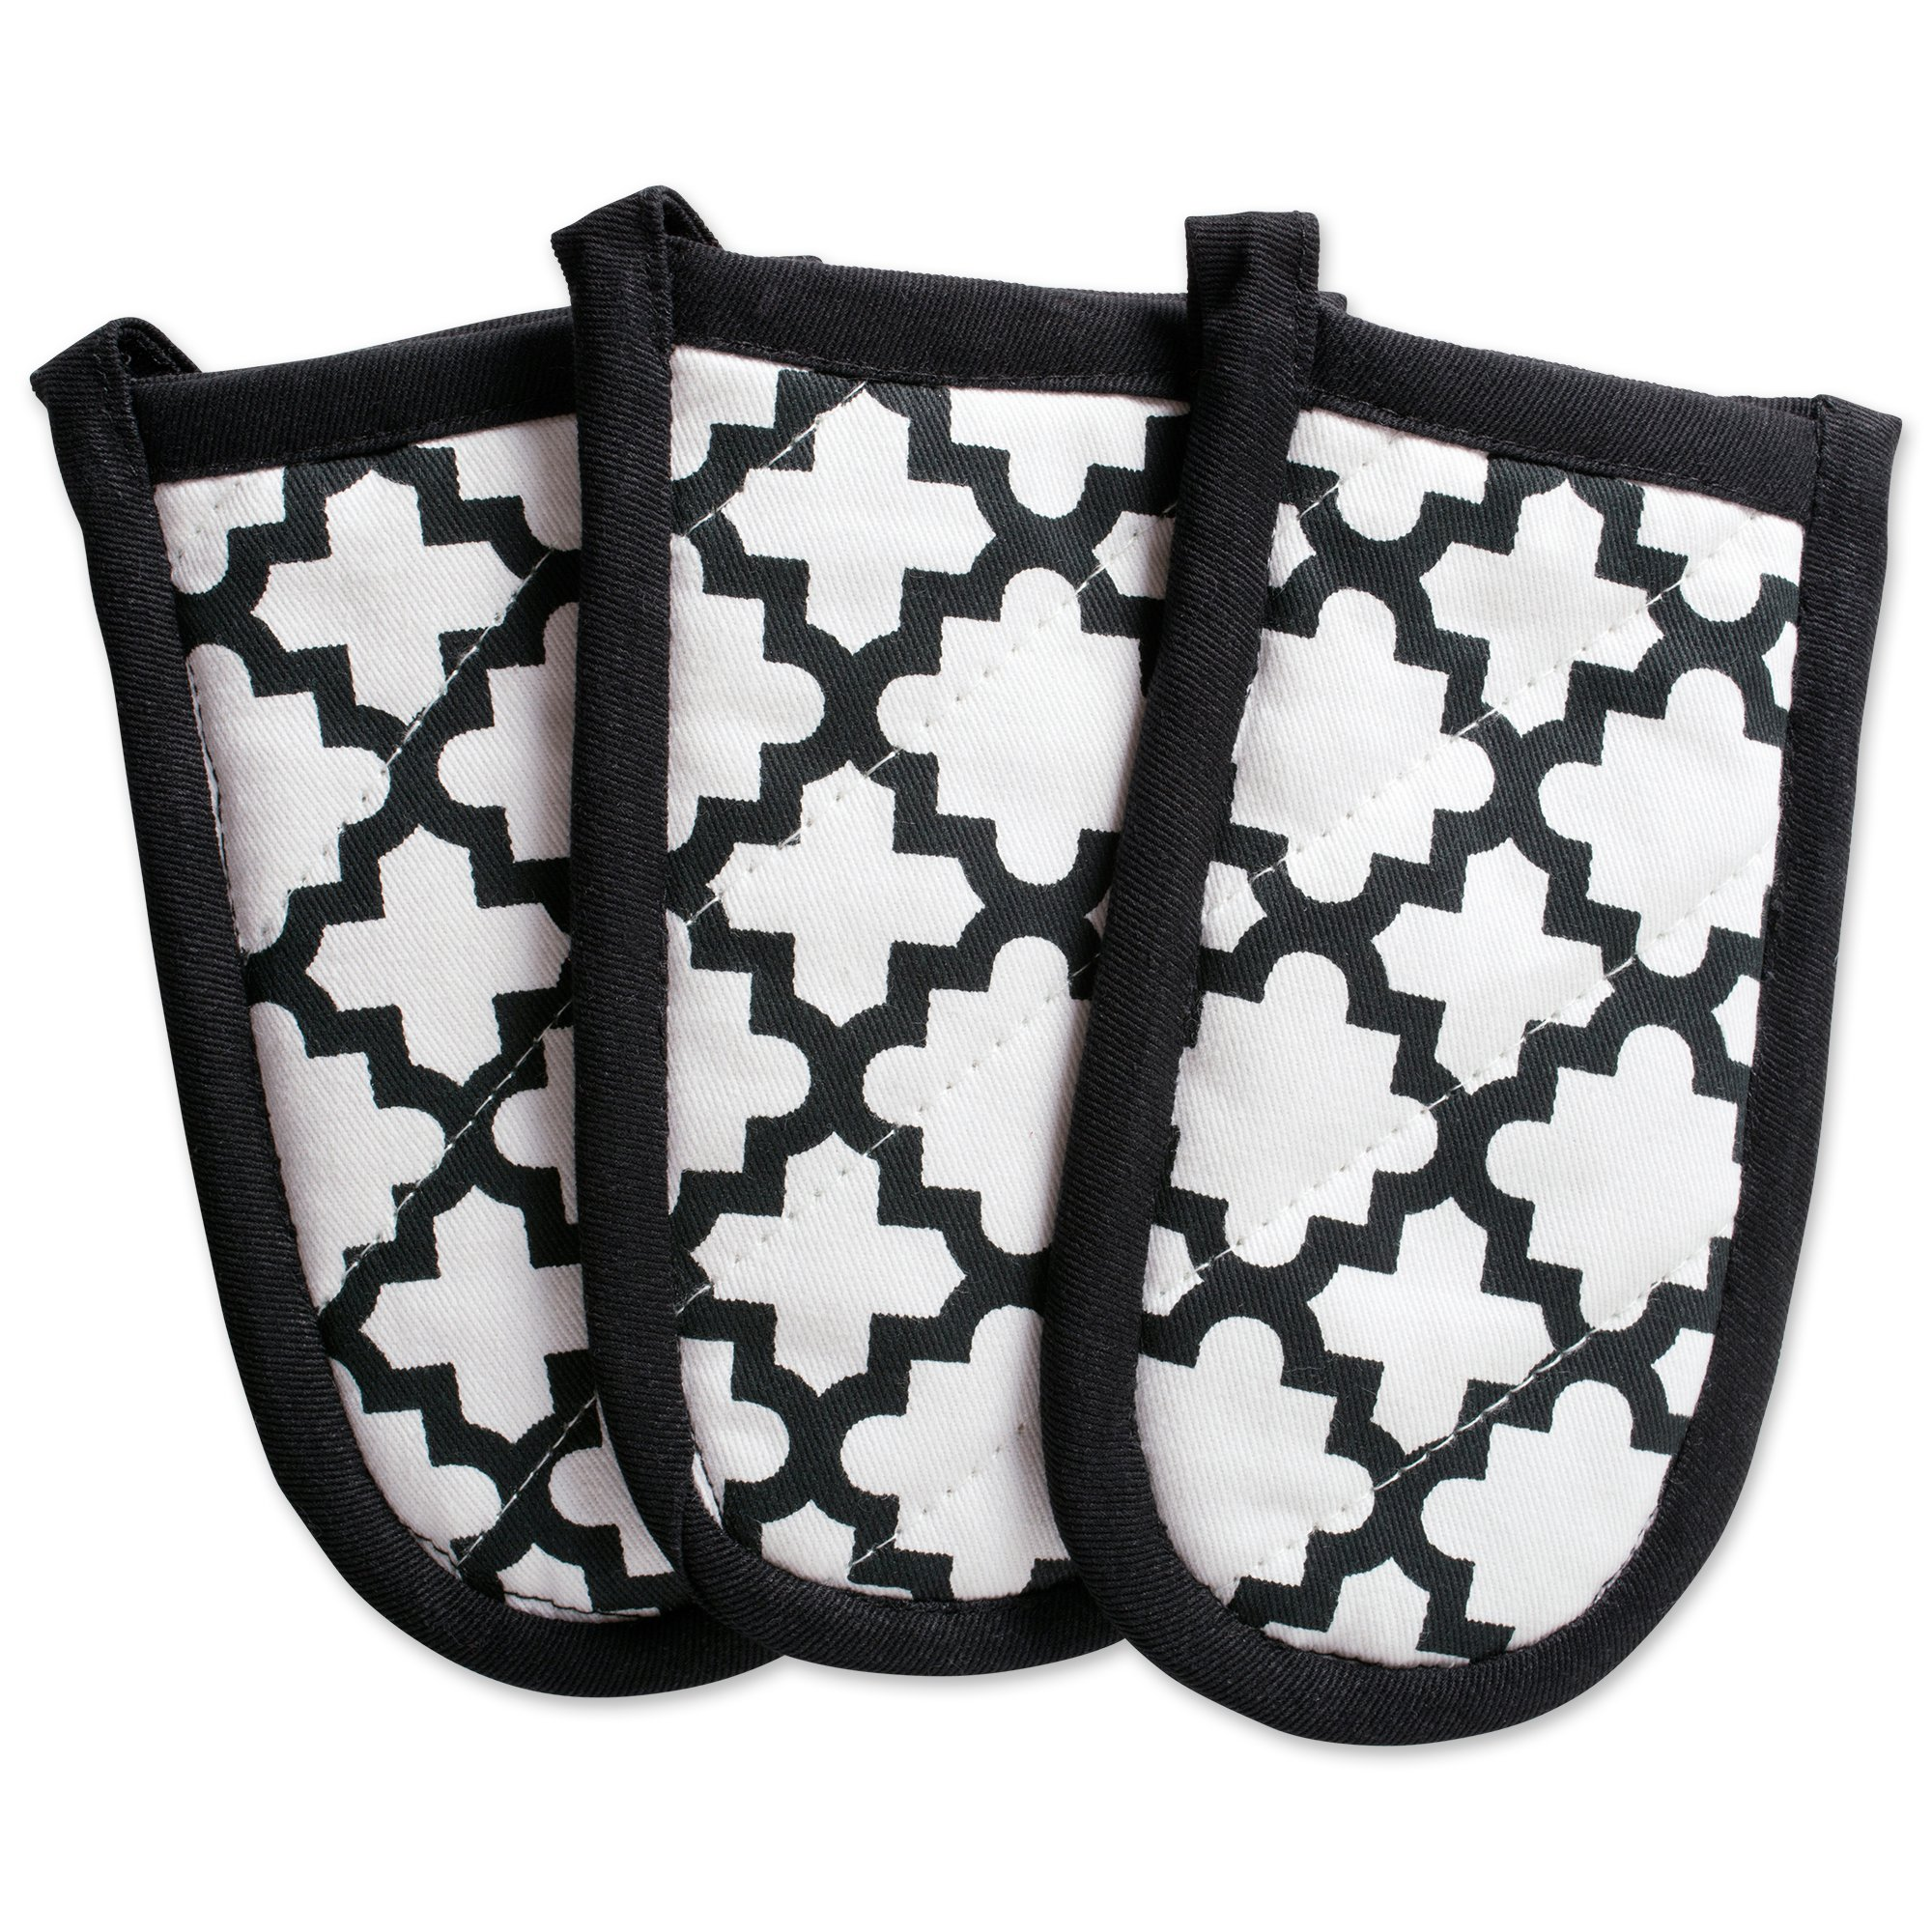 """DII Cotton Lattiece Pan Handle Holders, 6 x 3"""" Set of 3, Machine Washable and Heat Resistant Pan Handle Sleeve for Kitchen Cooking & Baking-Wwhite"""